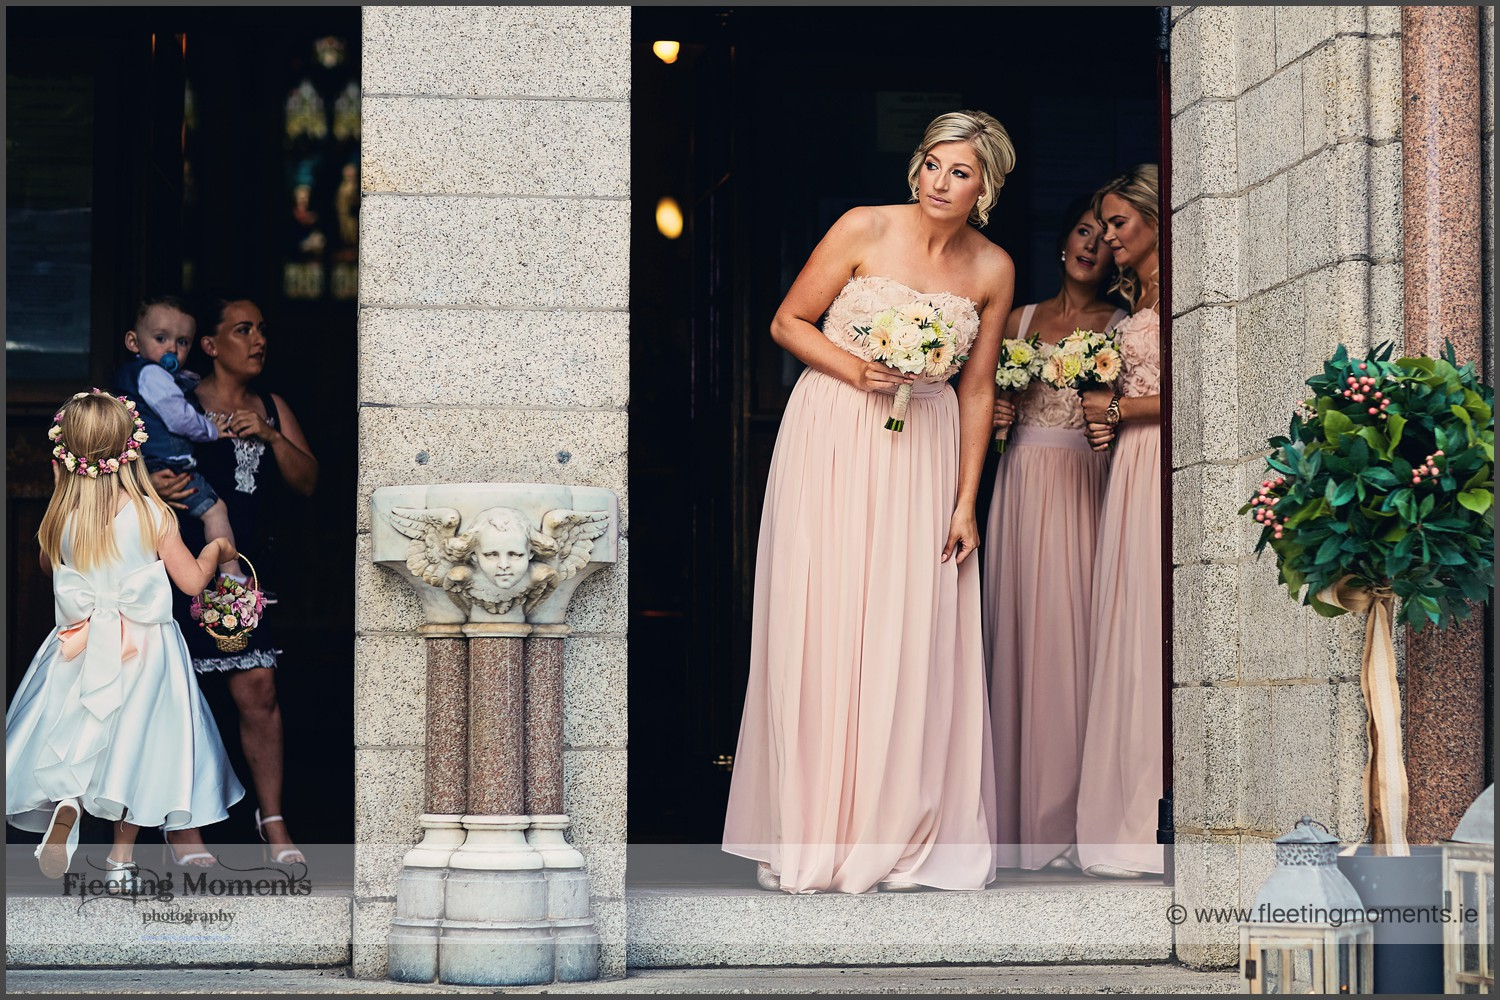 wedding-photographers-carlow-at-step-house-hotel-in-borris-22